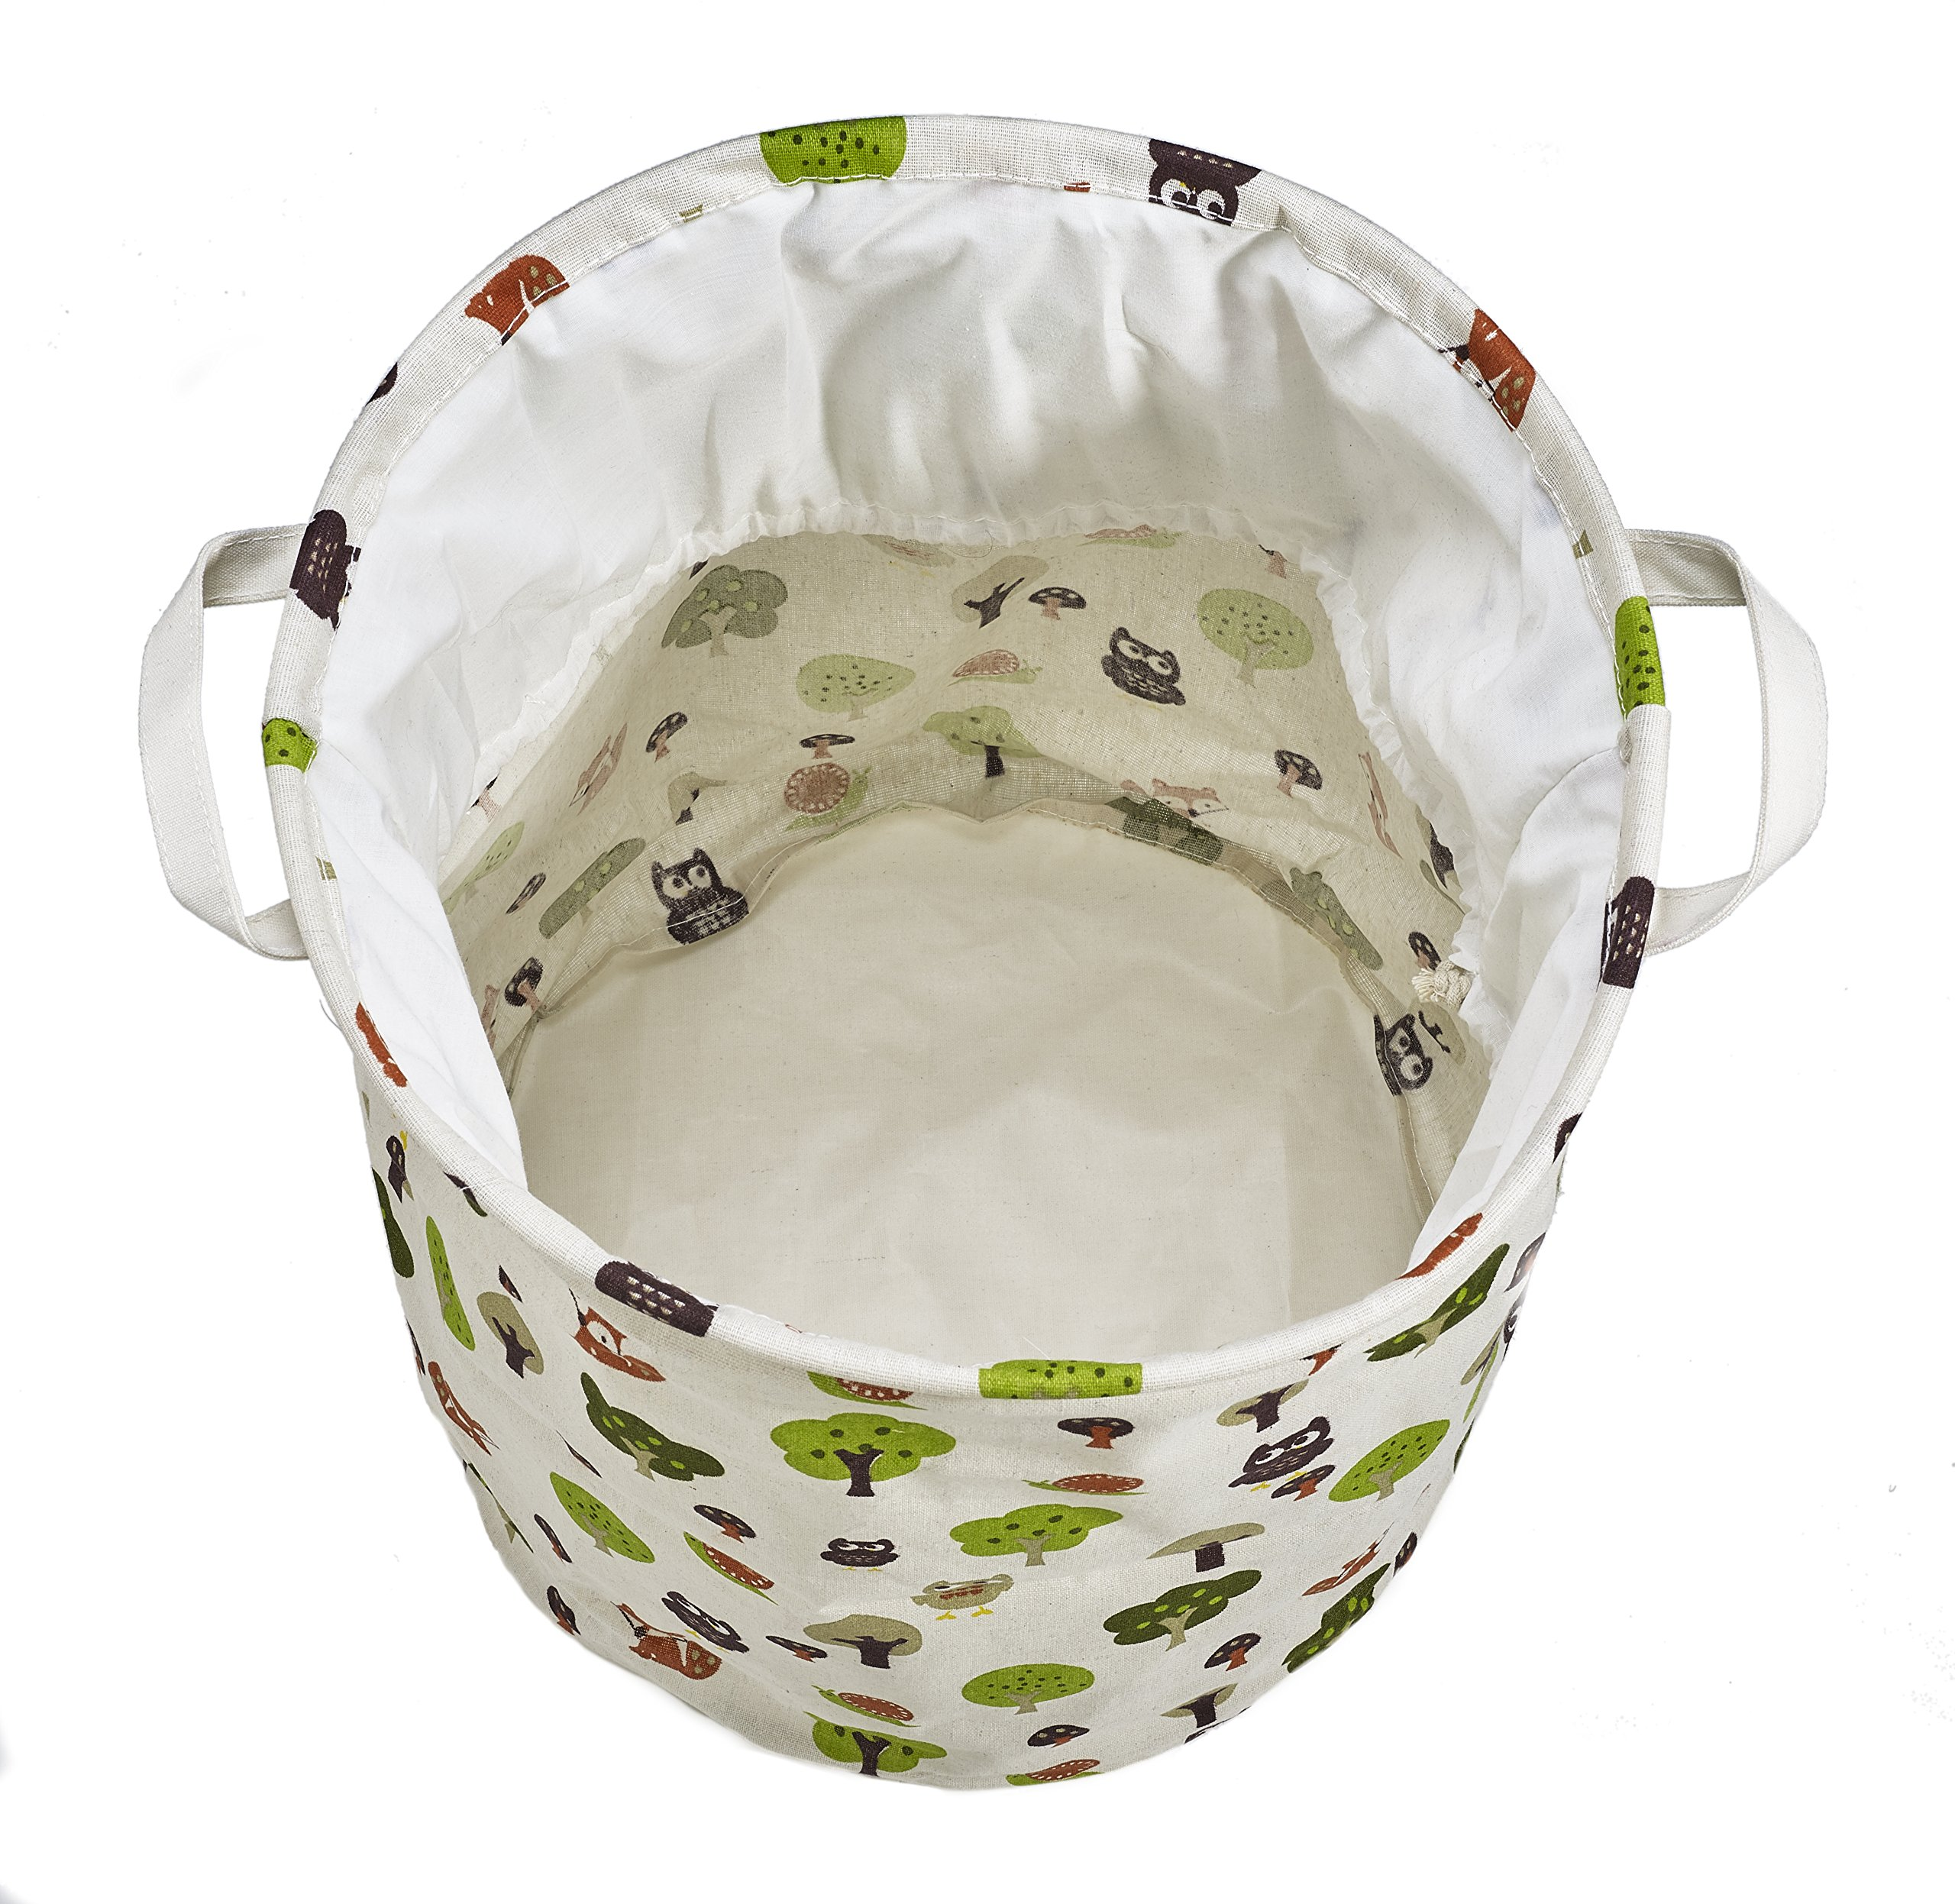 Org Store Cotton Fabric Collapsible Laundry Basket Dirty Clothes Hamper - Perfect for College Dorms, Kids Room & Bathroom (Forest Patterned) by Org Store (Image #3)